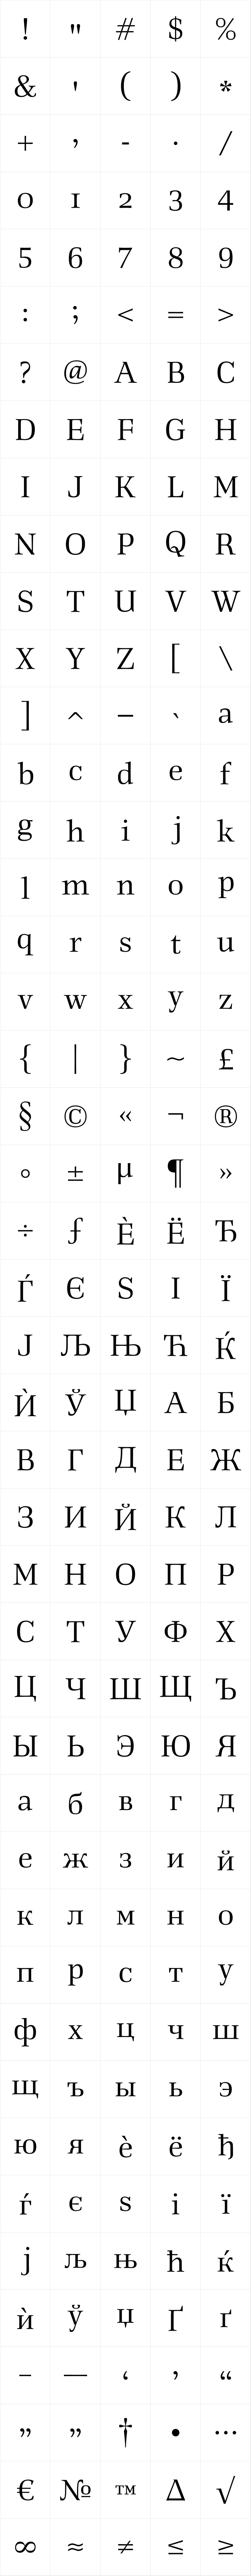 Richler Cyrillic Regular